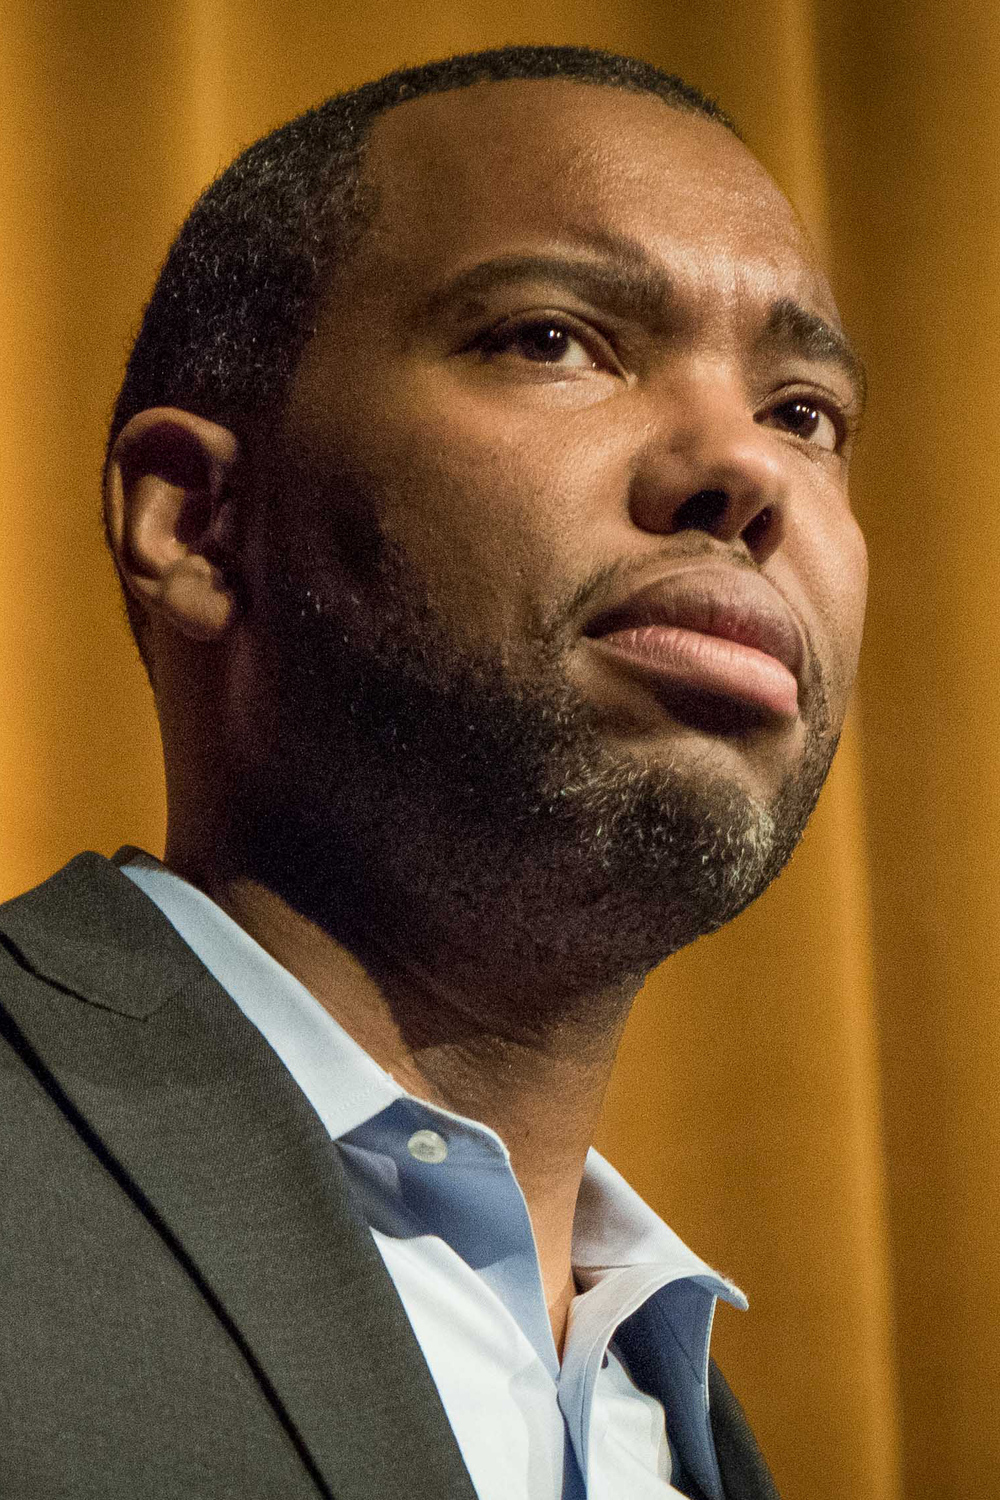 Ta-Nehisi Coates (Source: Wikipedia)